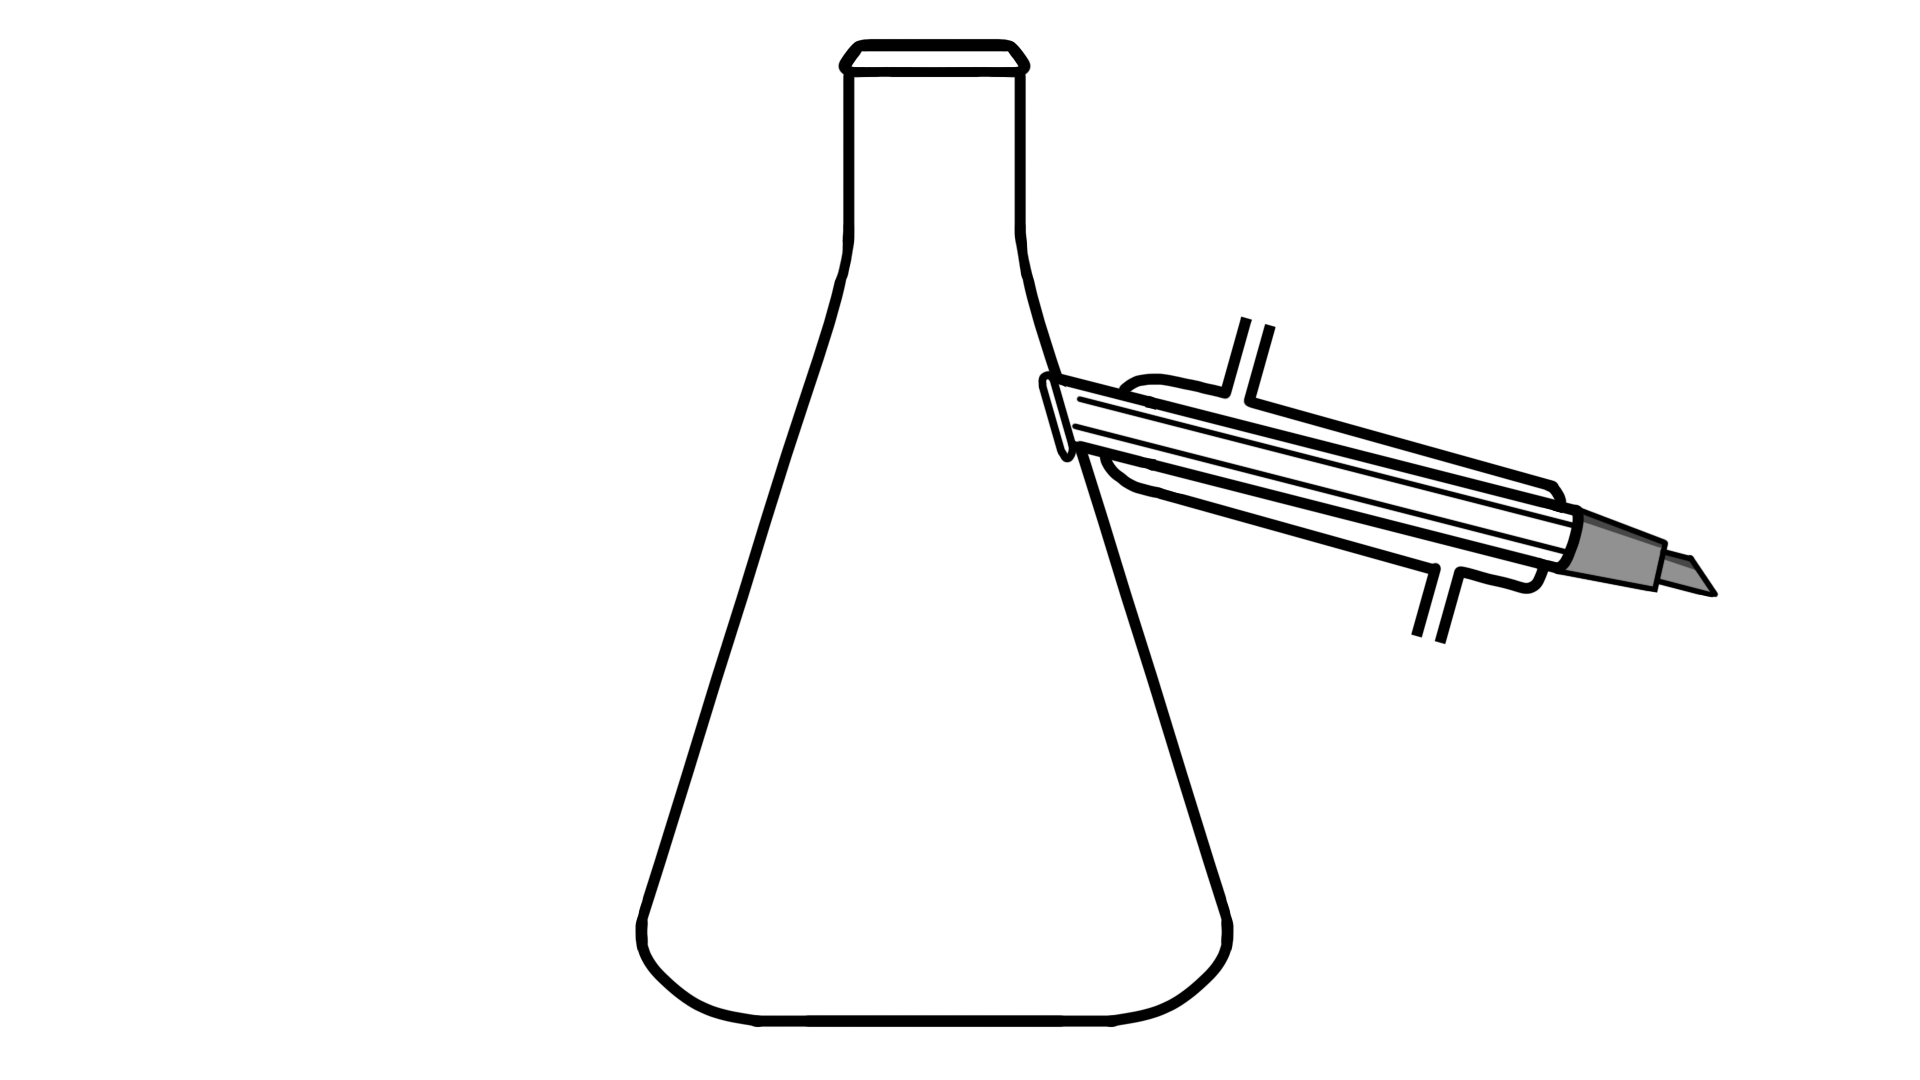 Flask with condenser